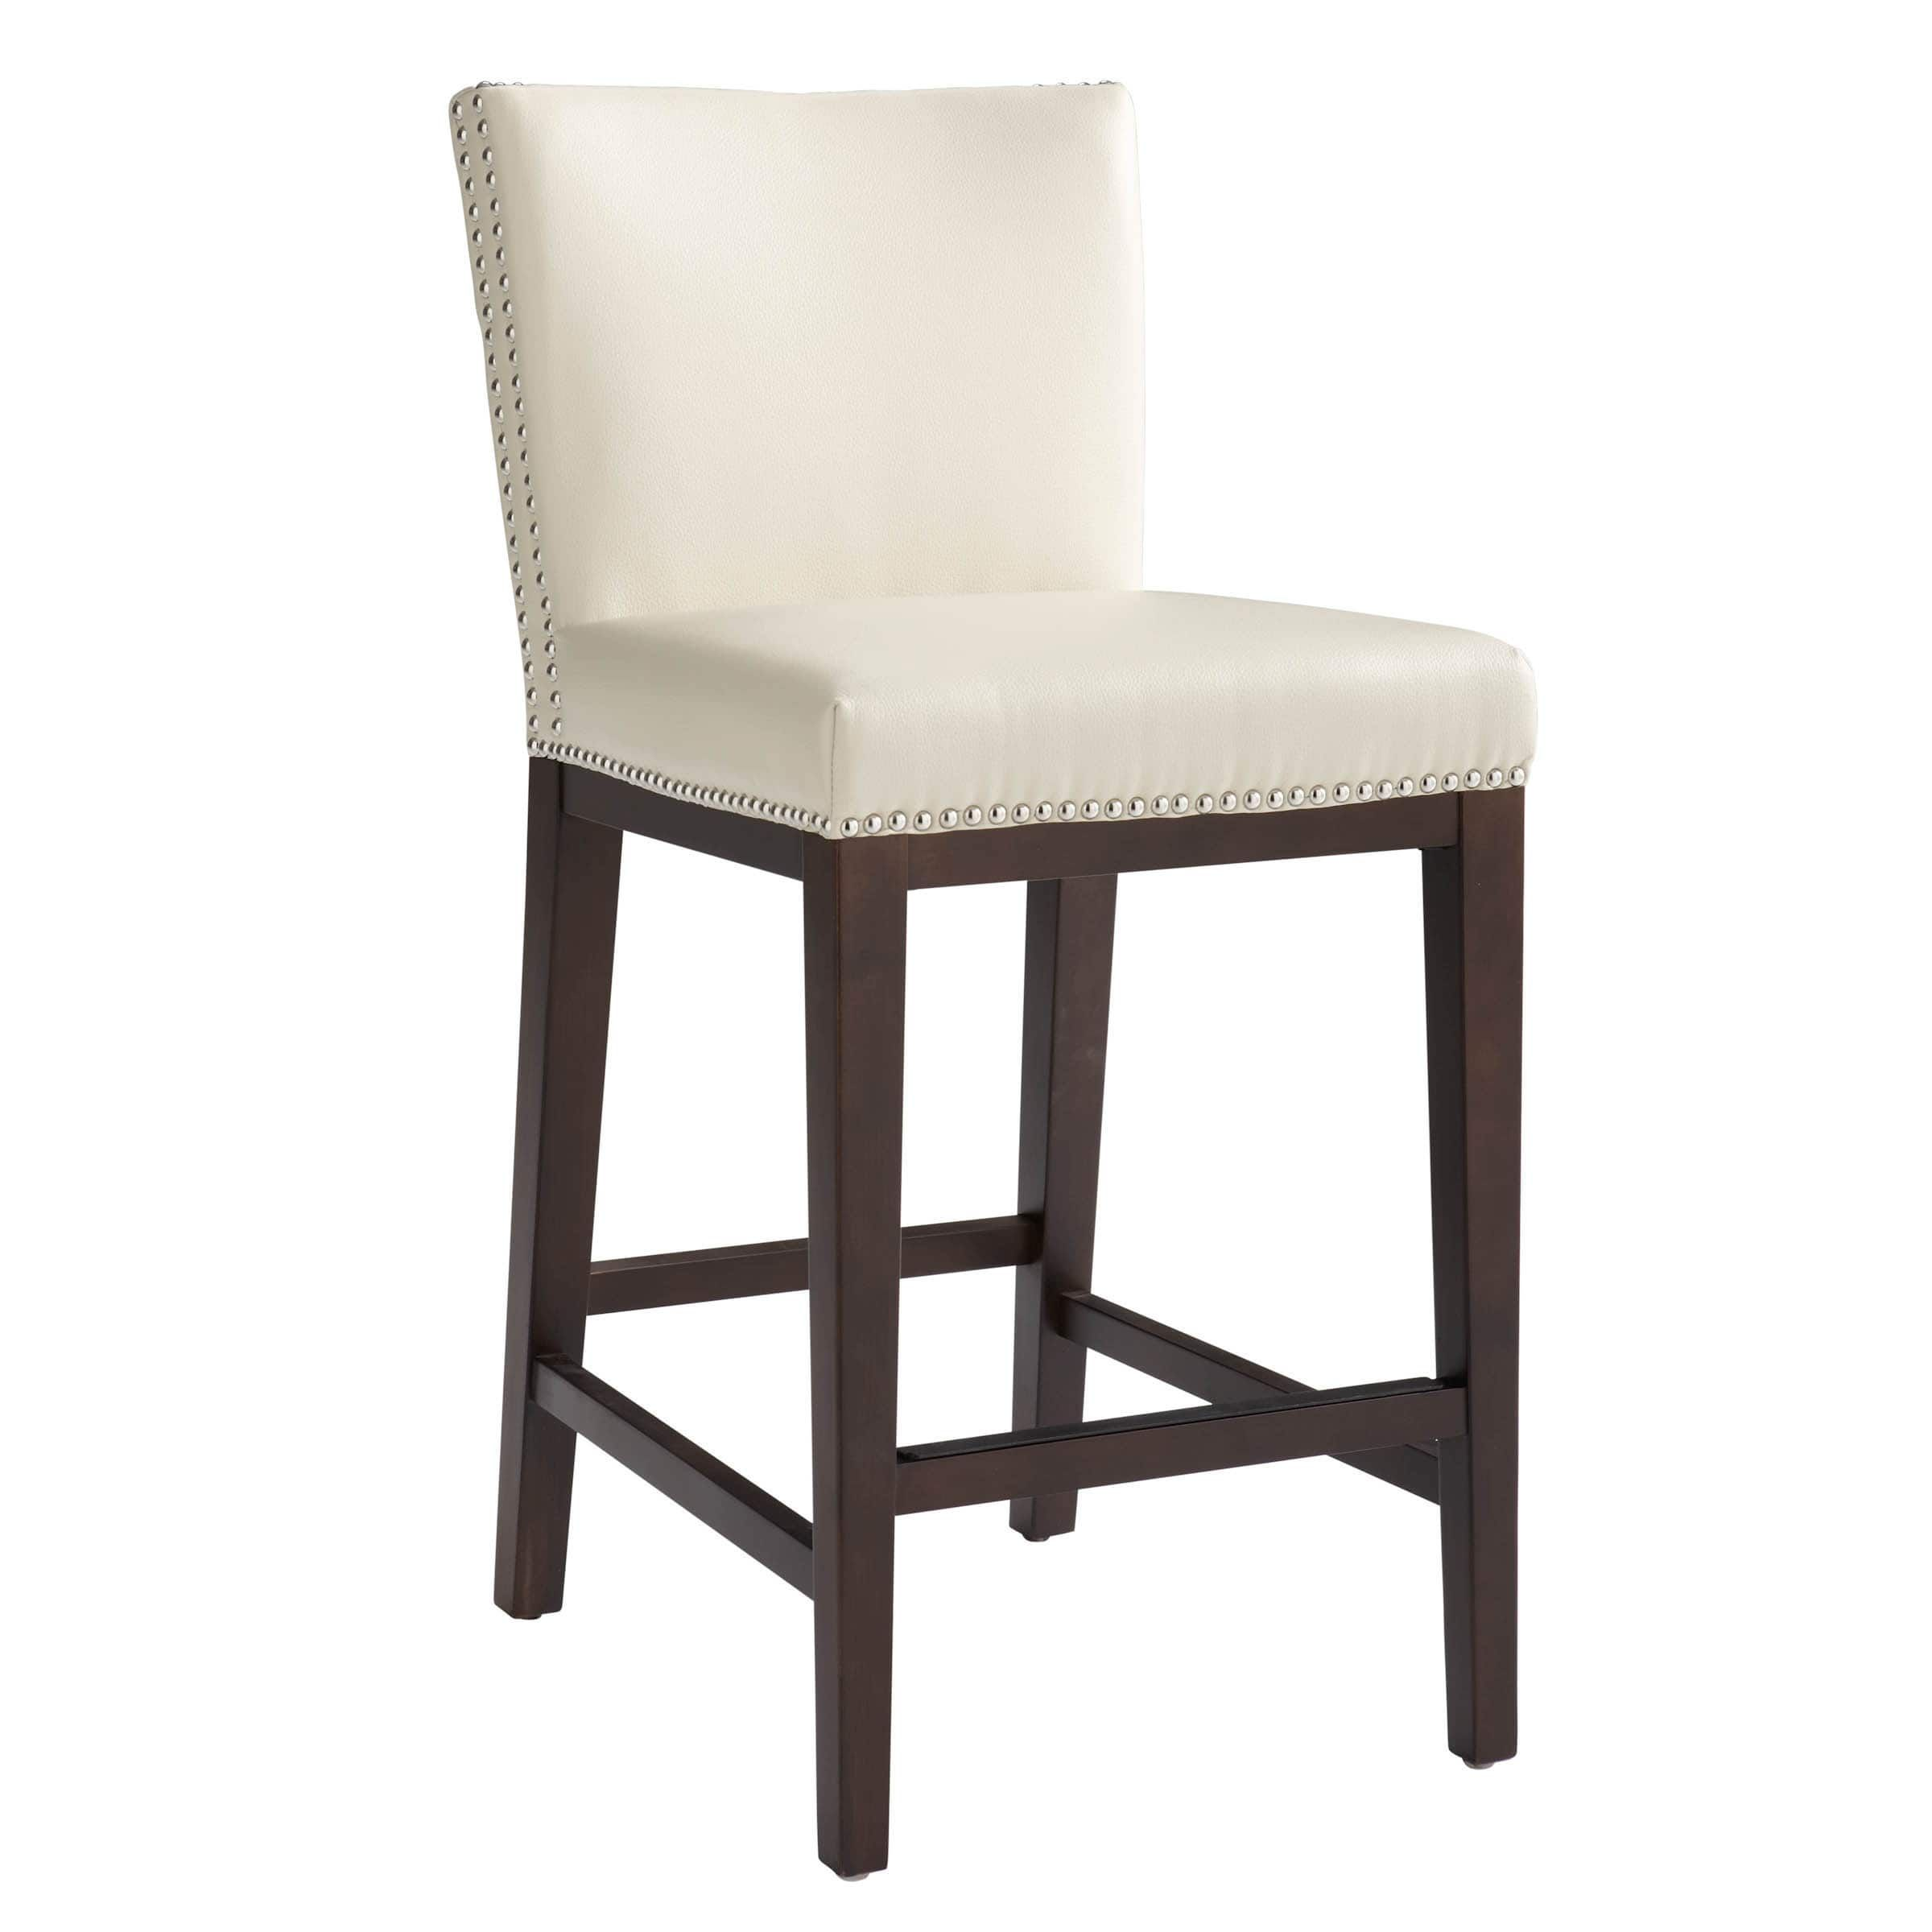 Excellent Oliver James Grayson Bonded Leather 26 Inch Counter Stool Bralicious Painted Fabric Chair Ideas Braliciousco